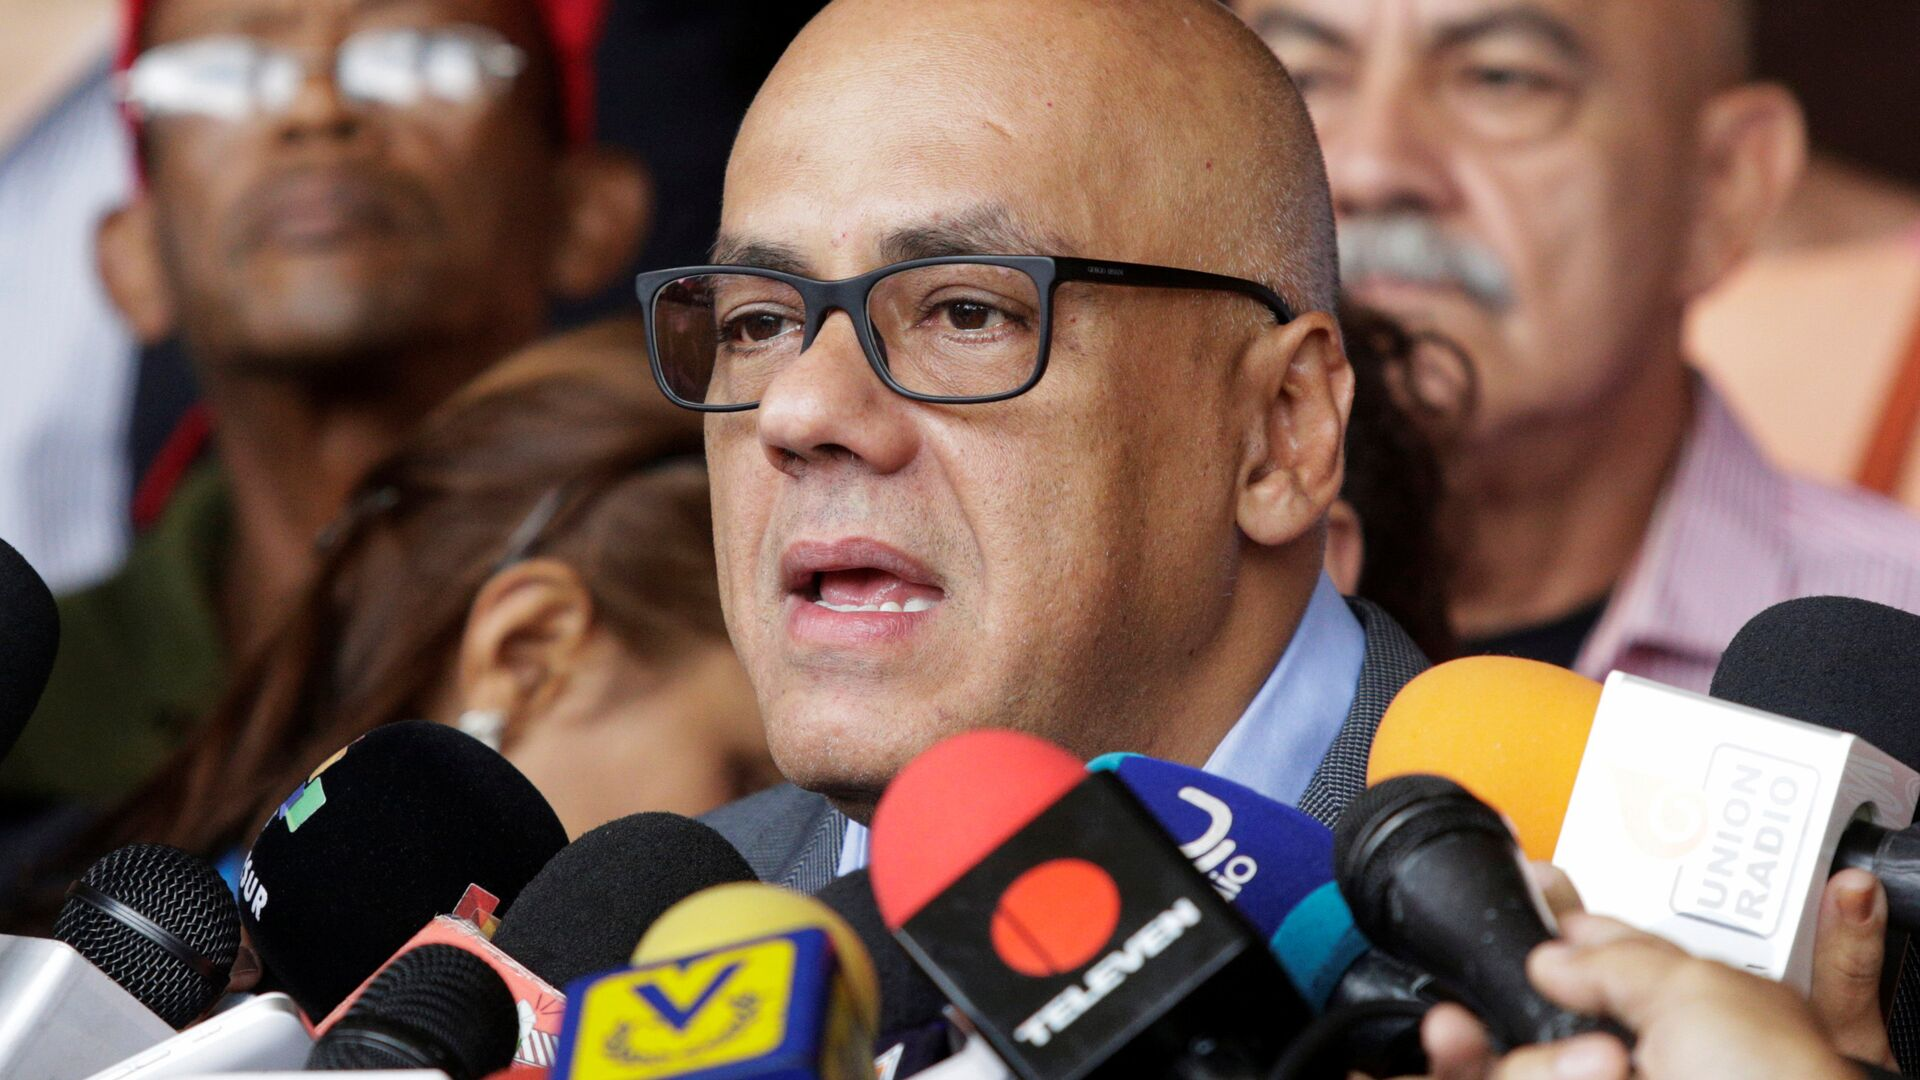 Jorge Rodriguez, mayor of Caracas talks to the media after challenging the opposition's referendum proposal against Venezuela's President Maduro in Caracas - Sputnik Mundo, 1920, 27.04.2021